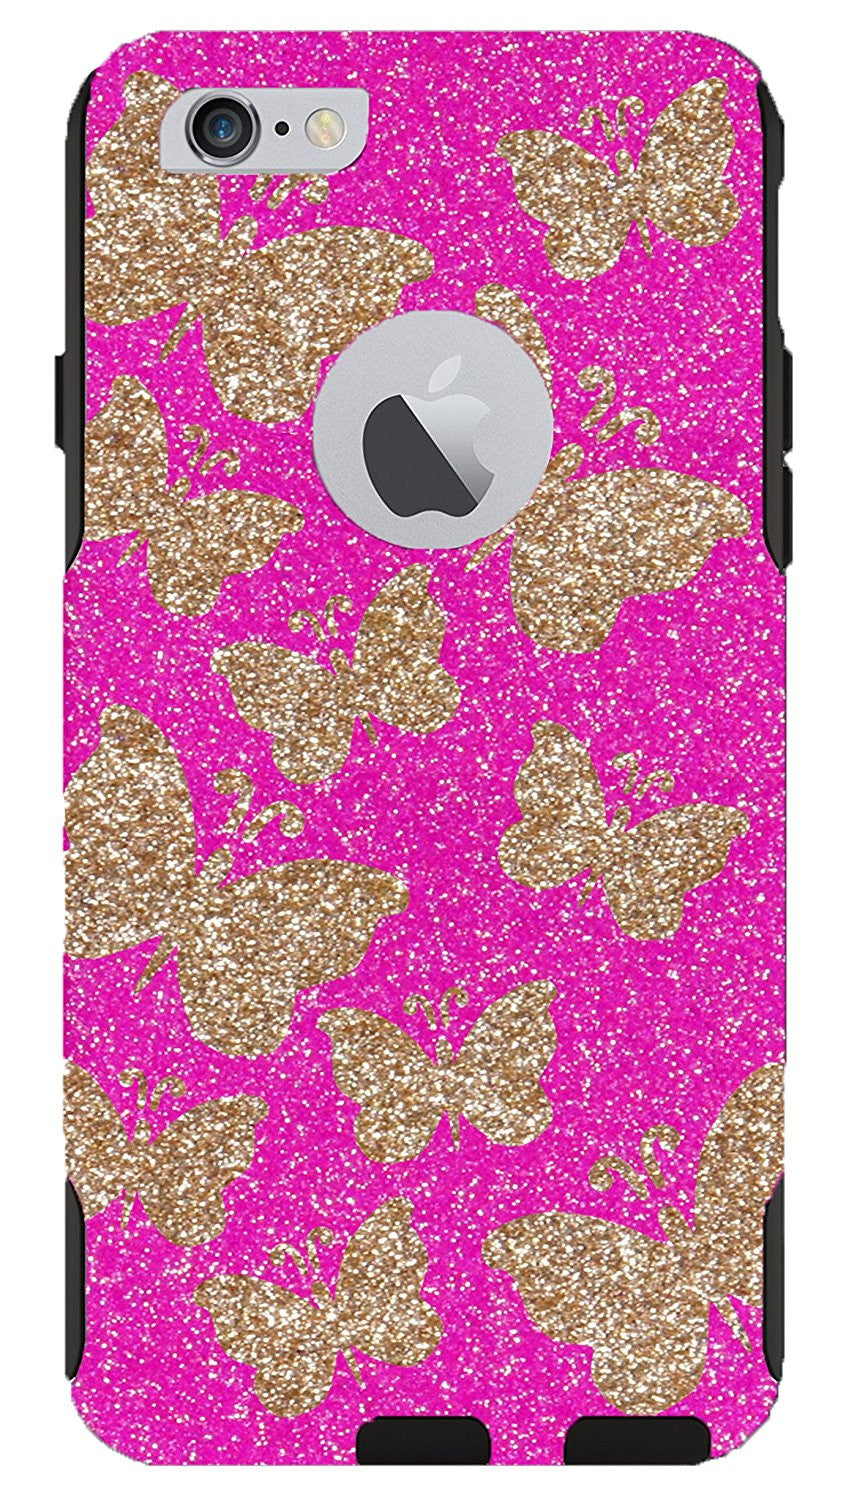 sports shoes 00b7b 59fbd iPhone 6 Plus 6s Plus Case - OtterBox Commuter Series Custom Glitter Case  for iPhone 6 Plus/6s Plus, Retail Packaging - Gold Butterflies Hot ...